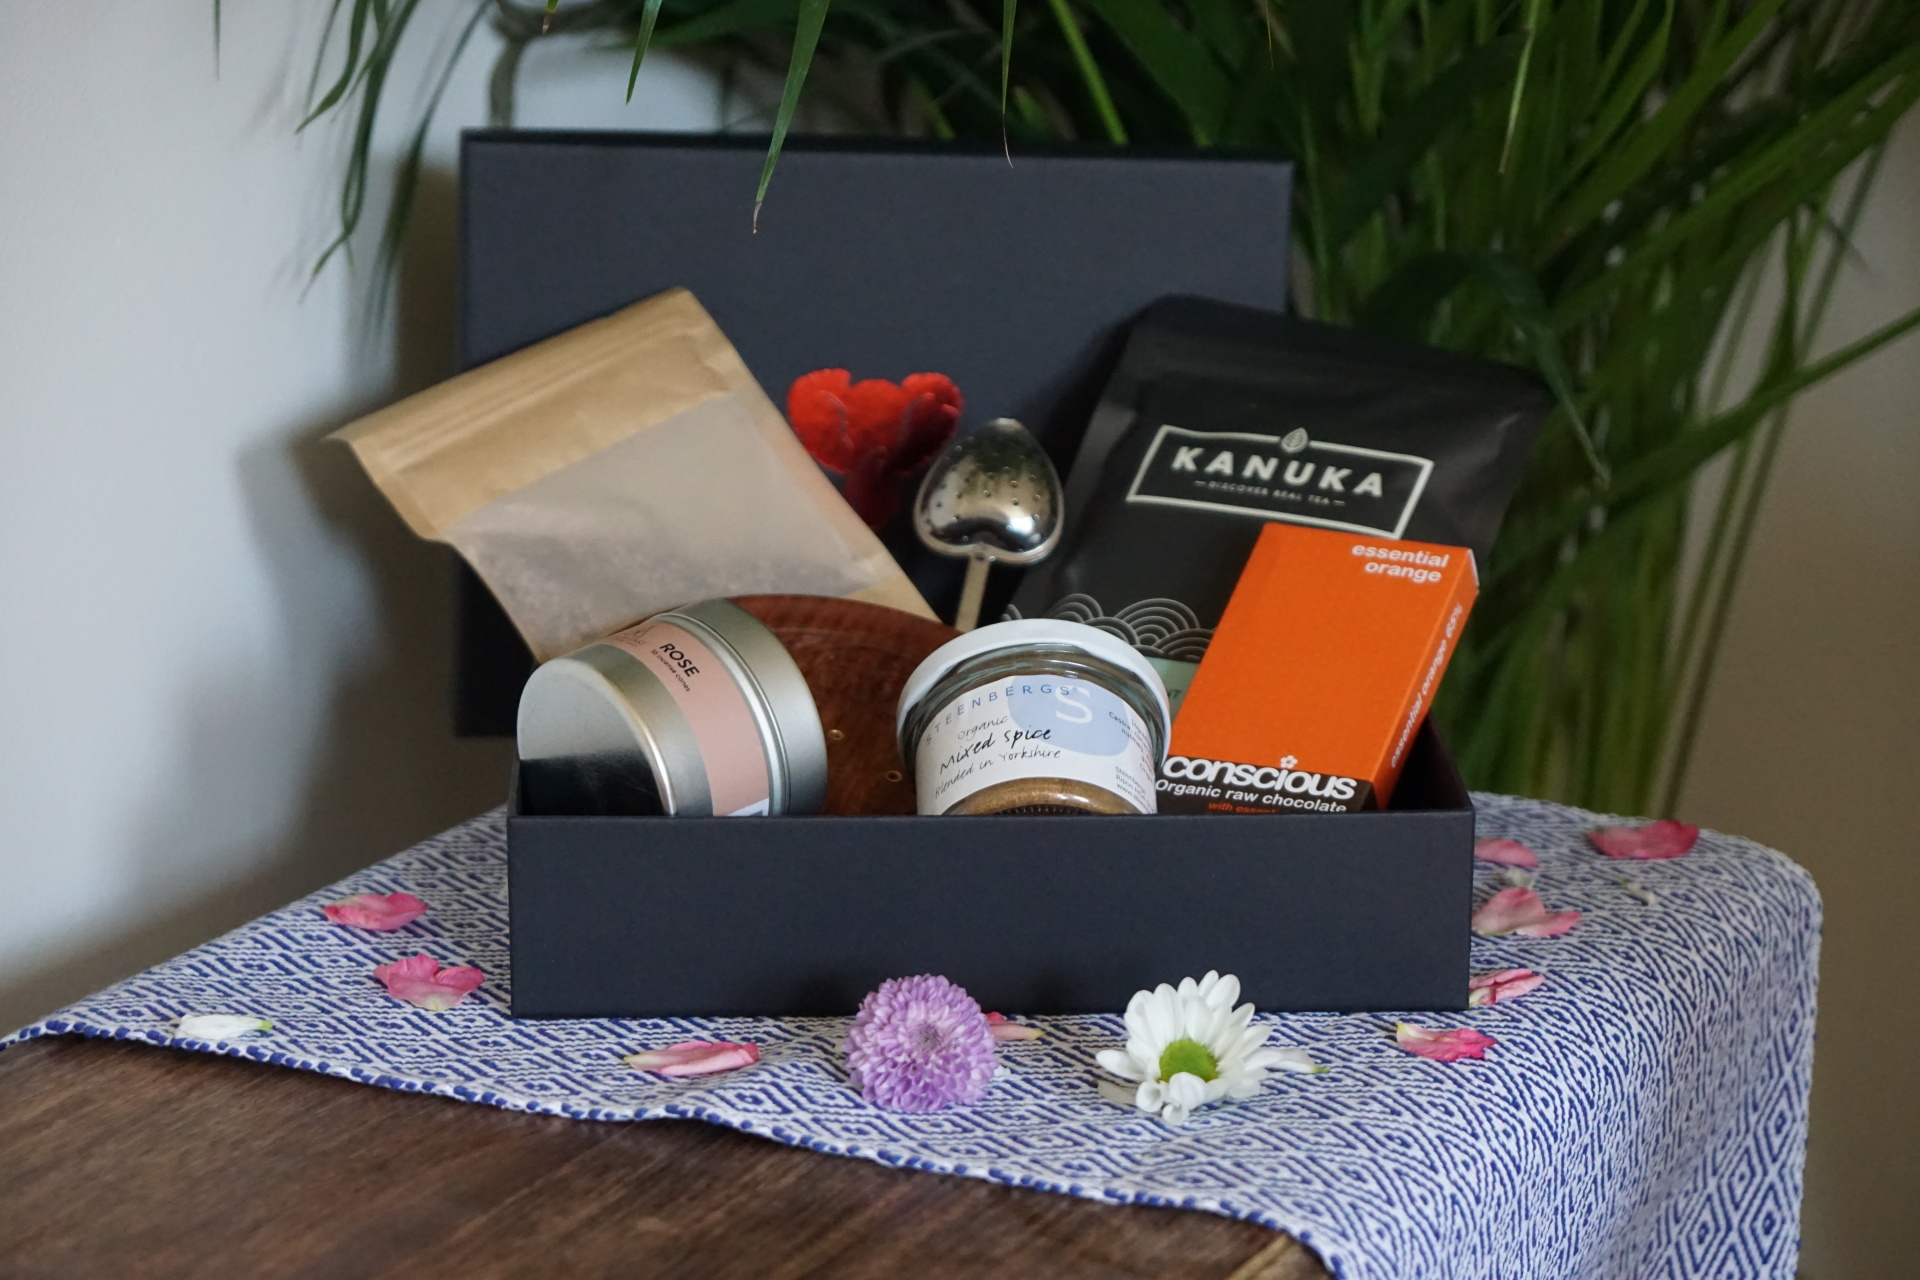 Getting Spiritual with a Subscription Box